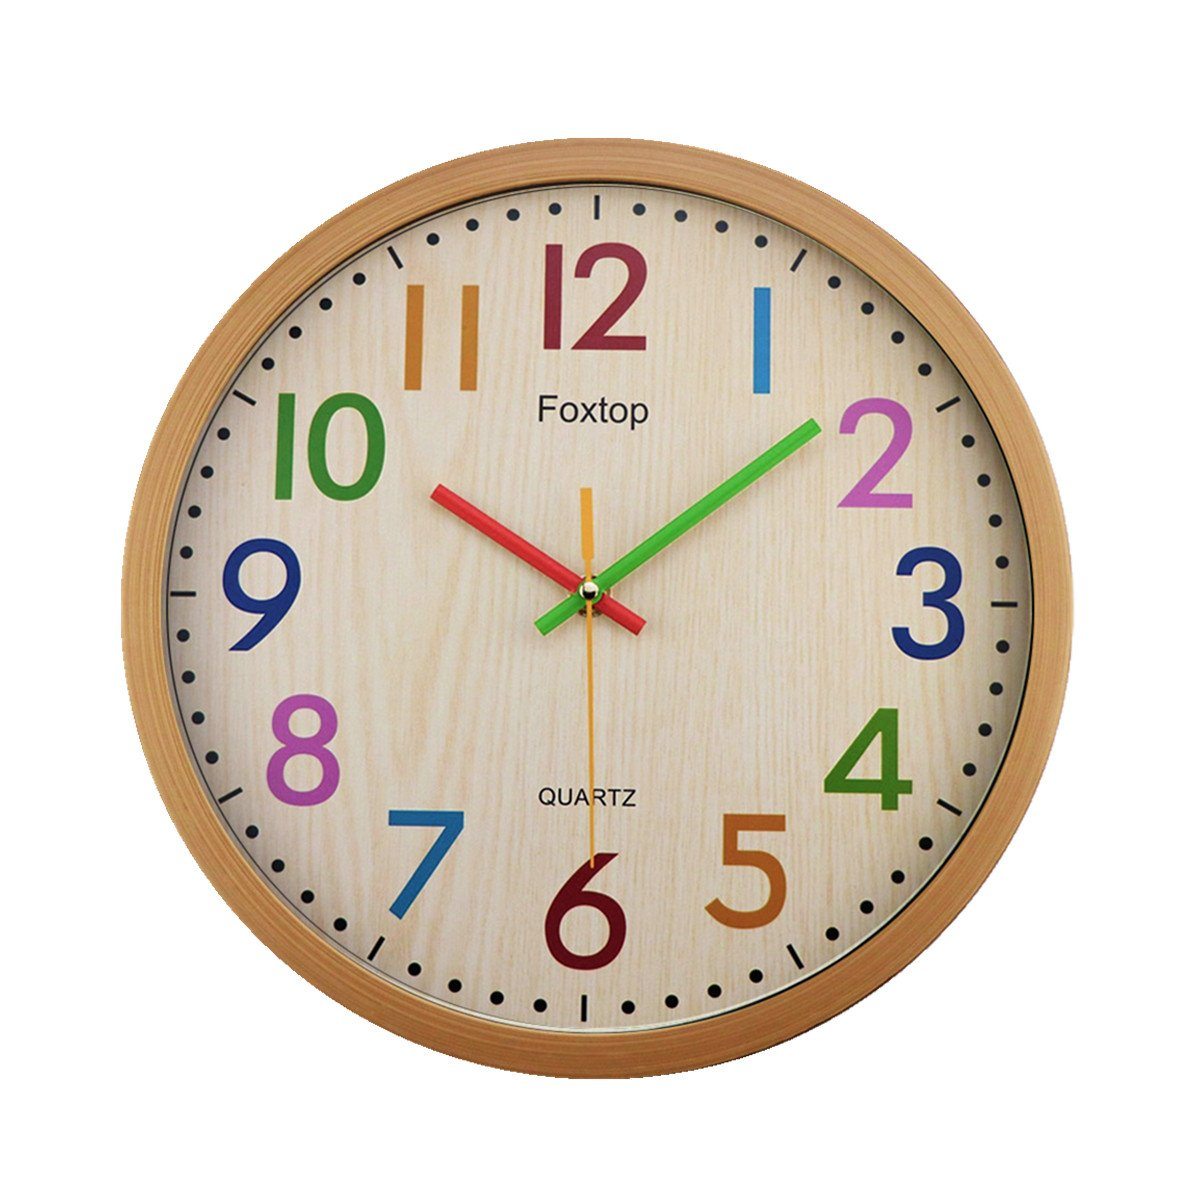 Foxtop Silent Wall Clock, 12.5 Inch Modern Stylish Colorful Non Ticking Wall Clock with Sweep Movement for Bedroom Kitchen Living Room Gifts FT125C